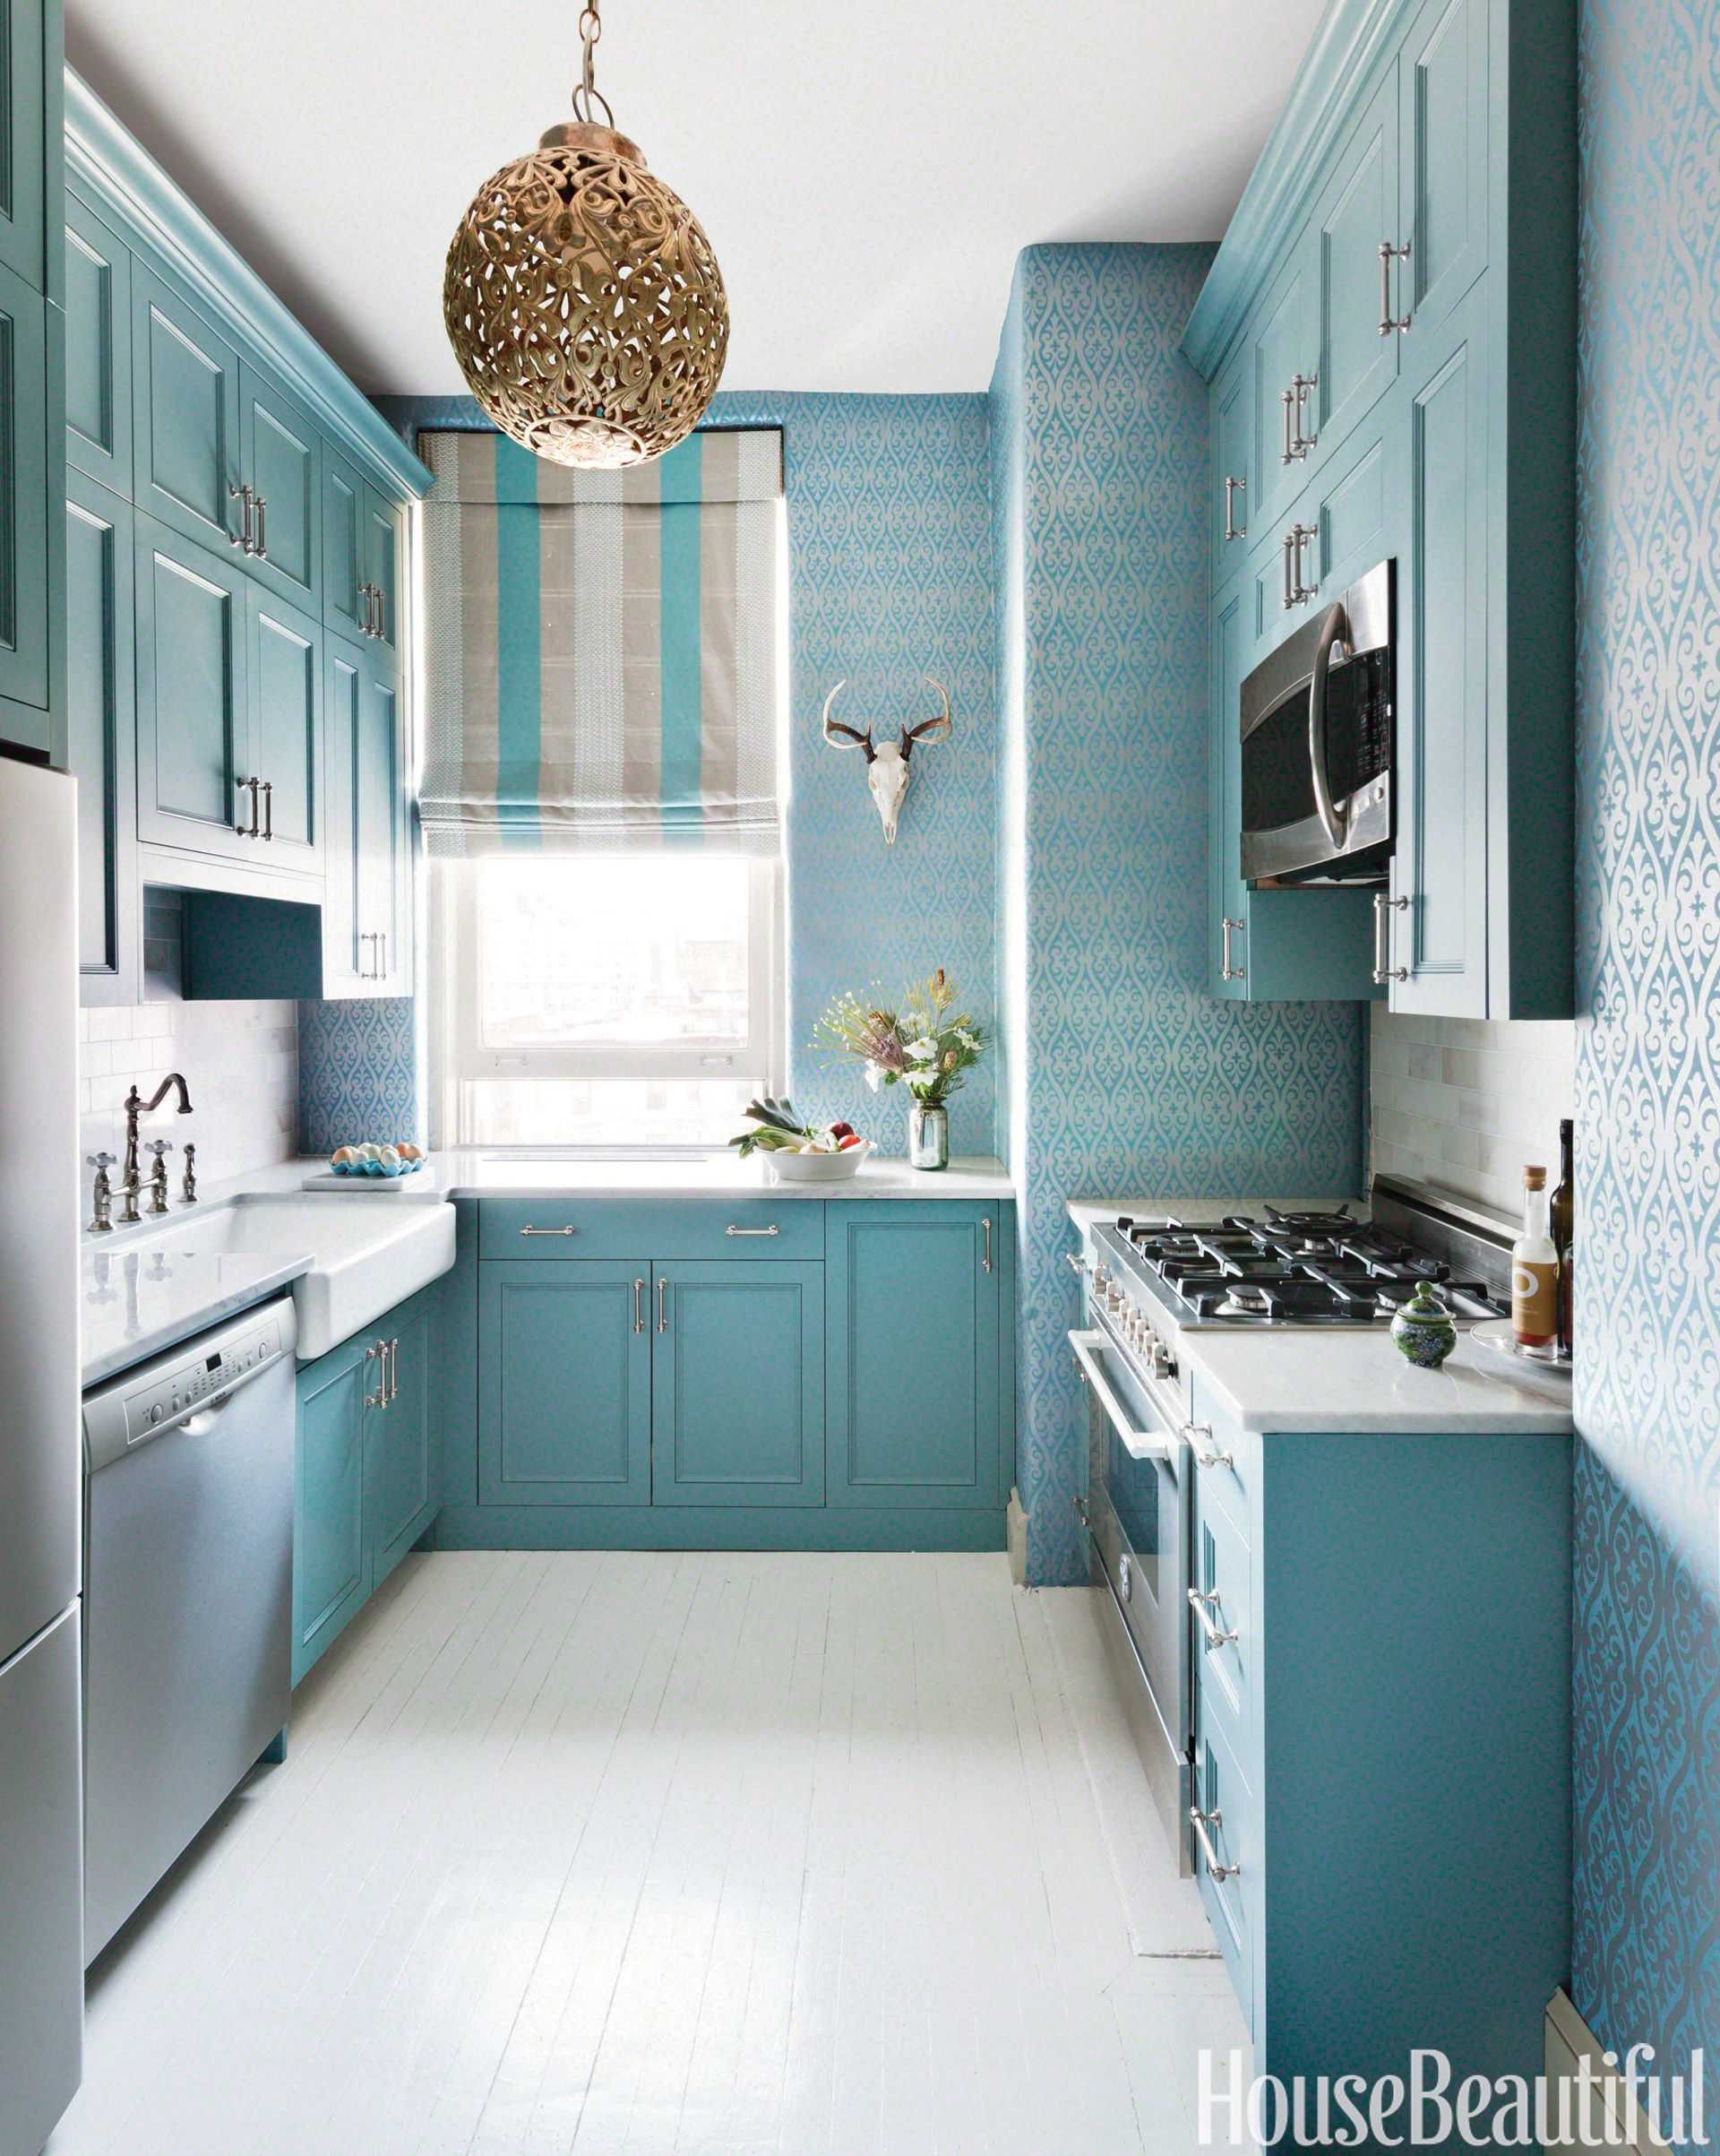 15 Kitchen Decorating Ideas - Pictures of Kitchen Decor